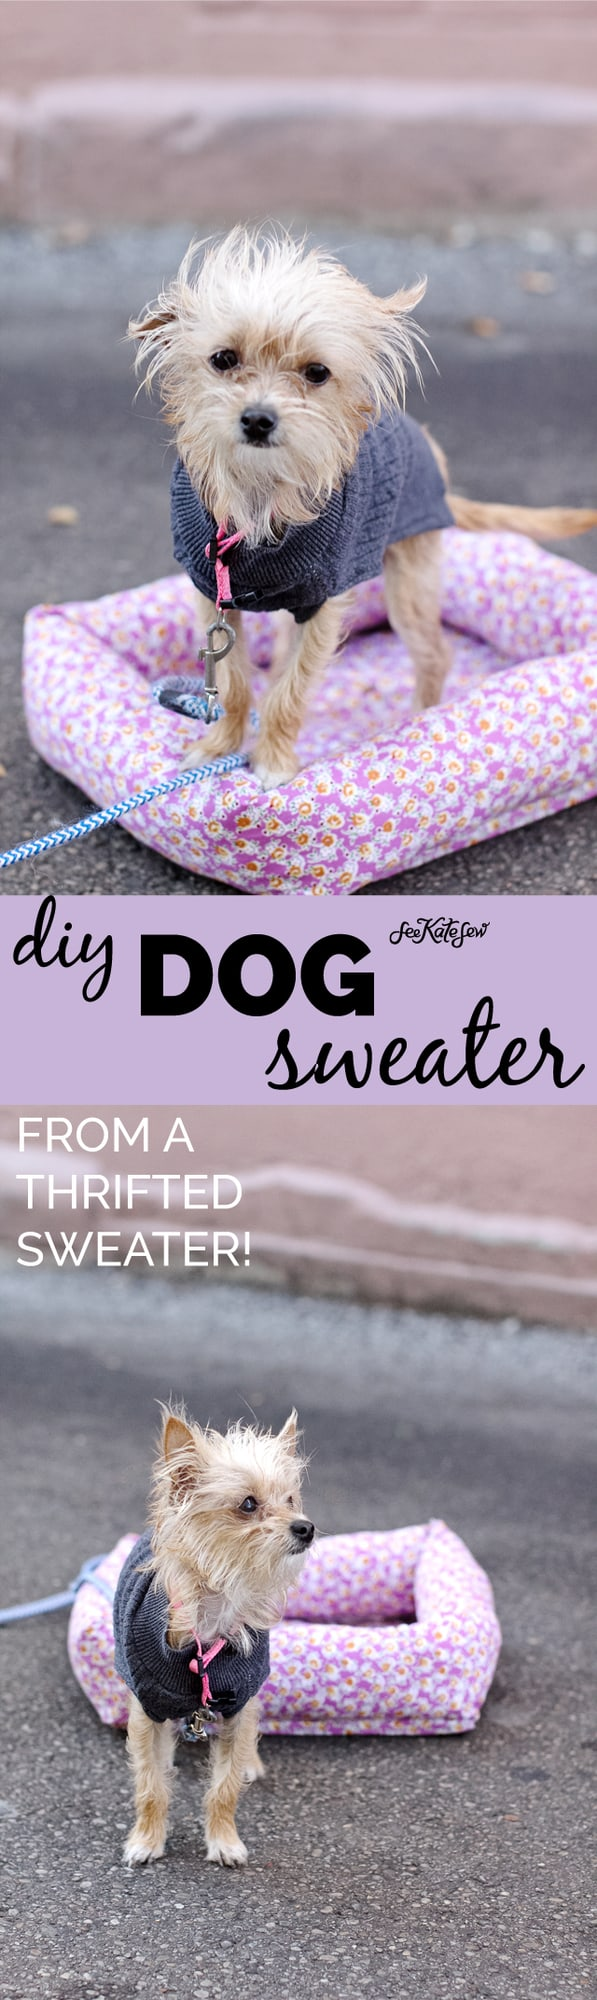 DIY Dog Sweater Pattern | homemade dog sweater | dog sweater diy | how to sew a dog sweater | dog sweater pattern | dog sweater template | easy sewing tutorials | sewing projects || See Kate Sew #dogsweater #diydogclothes #sewingproject